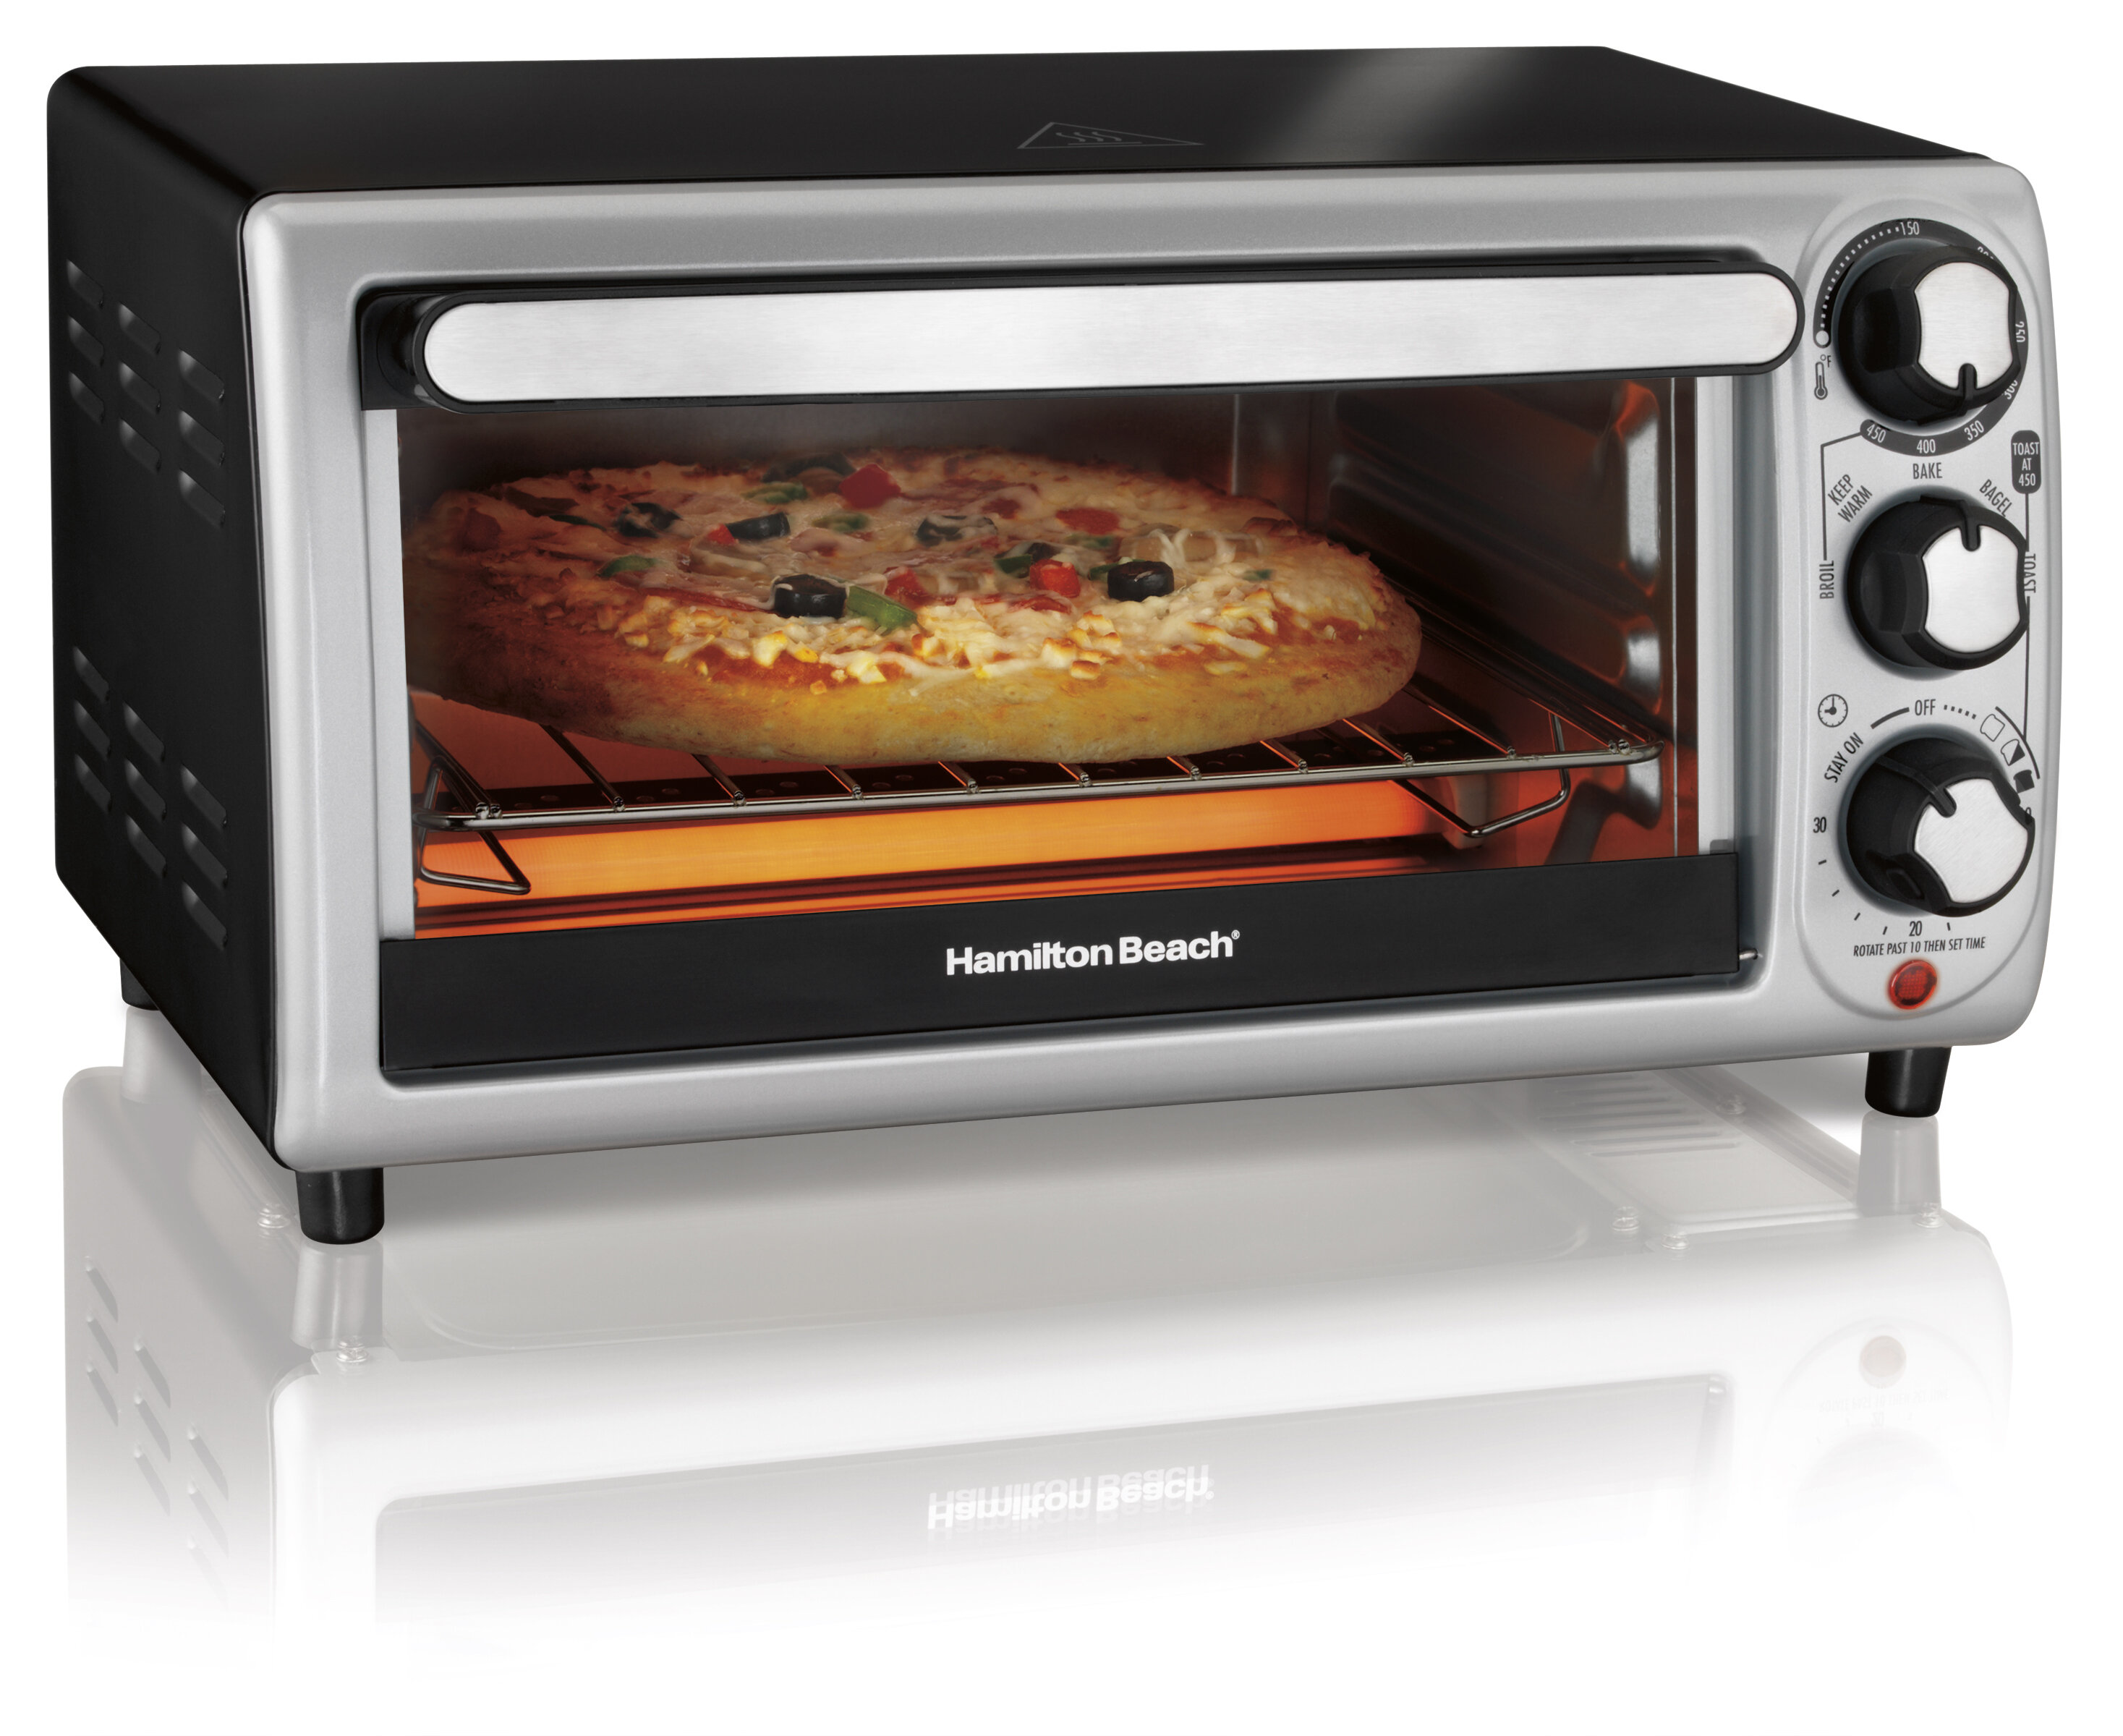 res slice technicalissues convection silver toaster p black global ovens oven inflow decker inflowcomponent content